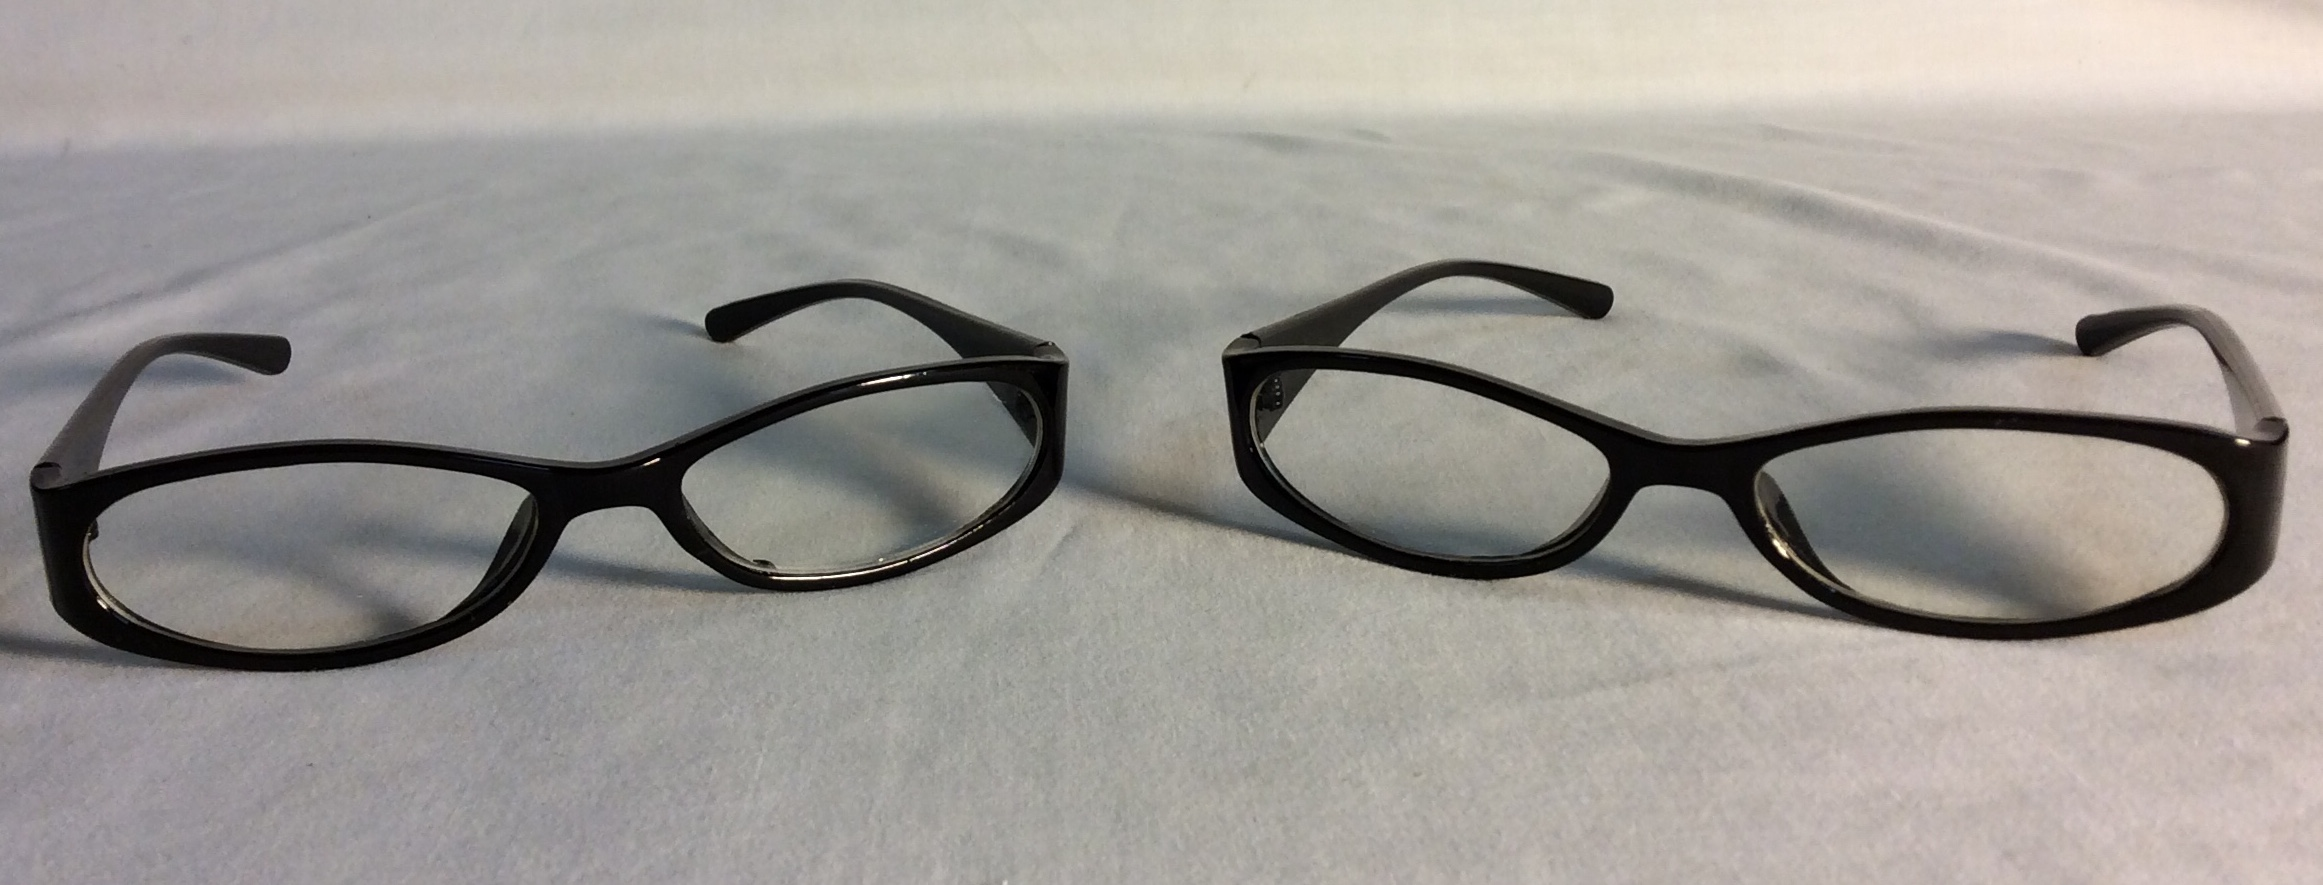 Black plastic eyeglasses